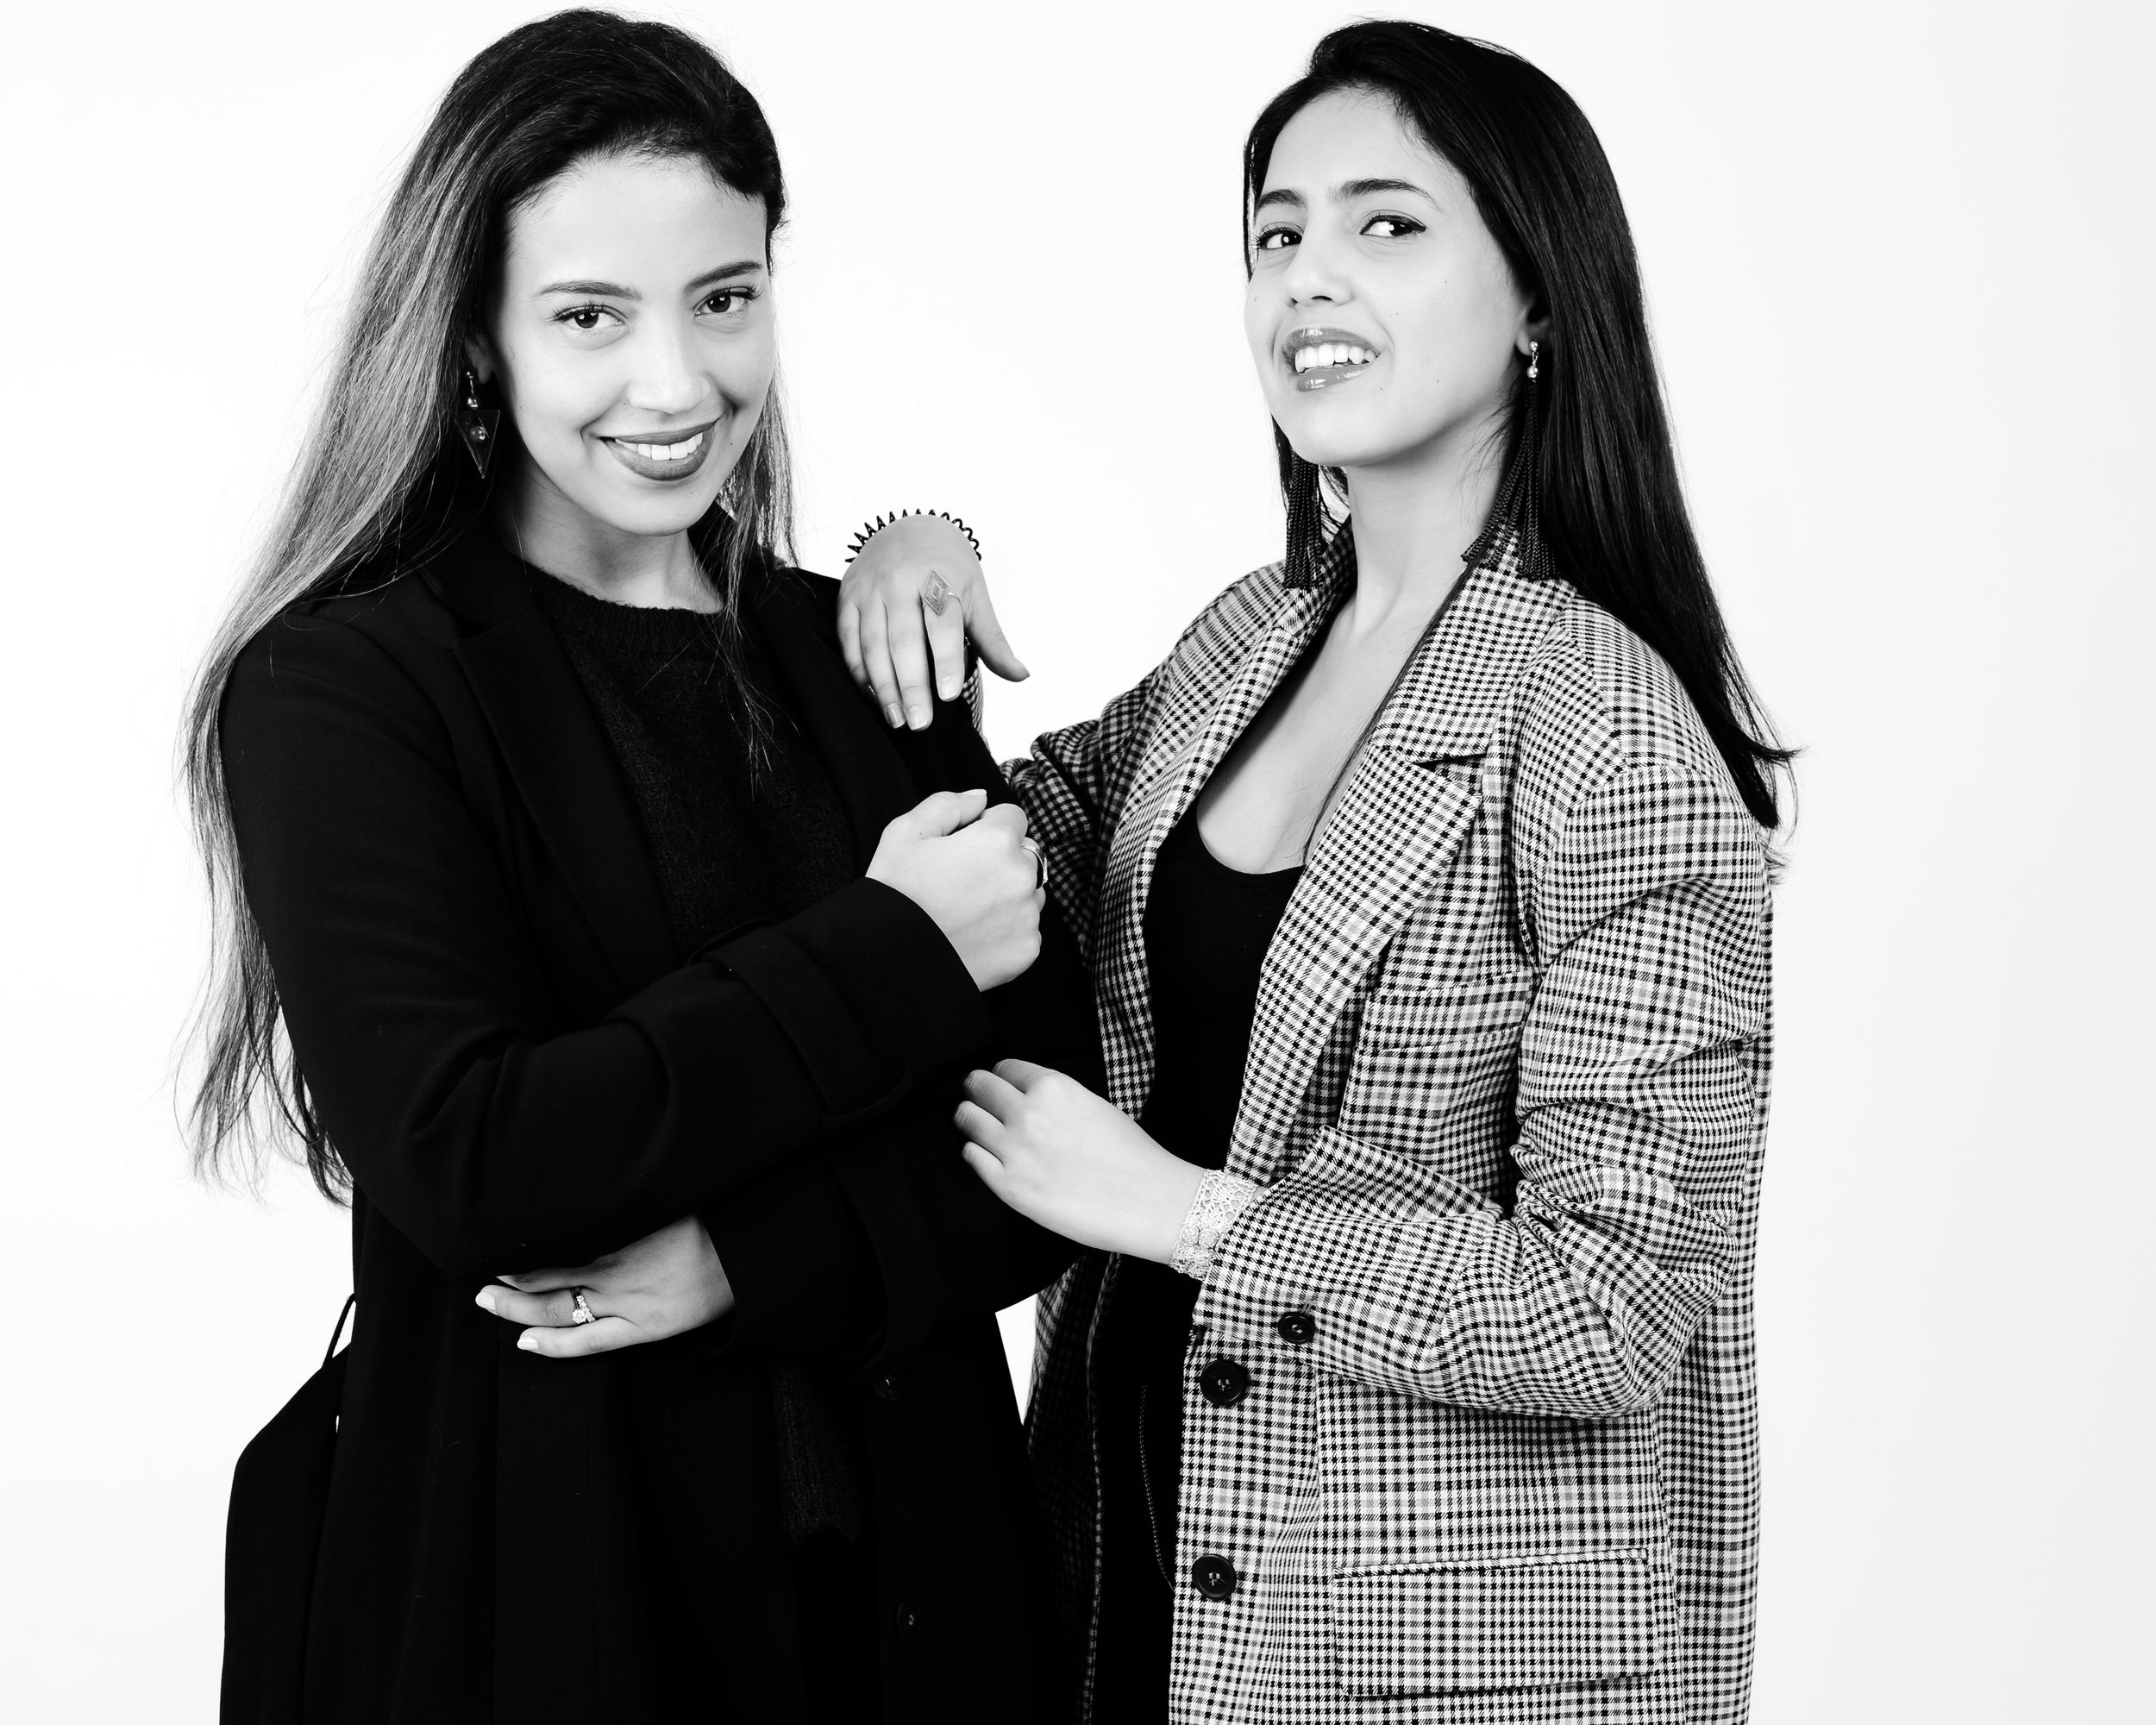 Founders - We are two founders and sisters with very different strengths. However, we complete each other perfectly.Based in New York, Zineb is the designer and co-founder of the brand. She is constantly looking for new ways to combine tradition and trend through her jewelry designs. She gets greatly inspired by the traditional tribal signs of Morocco which enable her to create collections with strong aesthetic that hint the brand origin. Also, Zineb's previous studies at Studio Jewelers in New York helped her improve her expertise and stay in touch with the latest design trends.Based in Casablanca, Rim is the CEO and co-founder of the brand. In Morocco, she works in close collaboration with Moroccan artisans. She assures the quality of the pieces to offer jewelry that has a long-lasting value (as promised in the brand's mission!). Also, Rim has a masters degree in e-commerce at the renowned school of business, HEC Montréal. She uses her knowledge and skills to create a unique online shopping experience through a user-friendly website, strong social media presence and frequent content creation (blog articles).In this photo, from left to right: Zineb & Rim